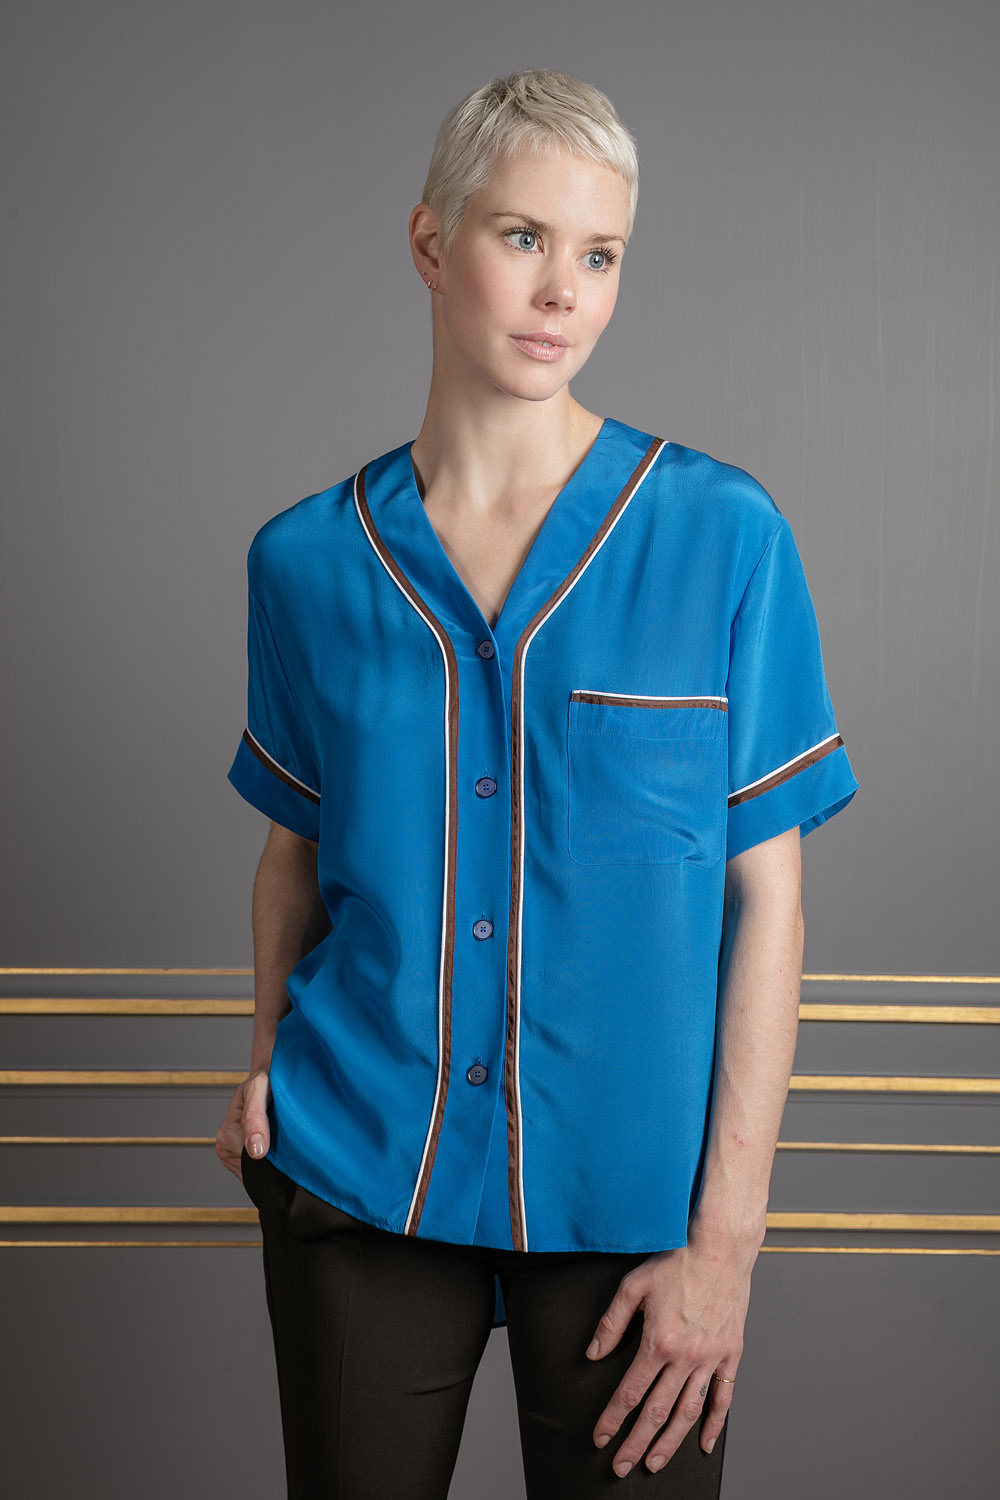 e3bae2a42917b5 boutiquelessuites.com - LesSuitesOnline buy Rochas - Blue silk shirt on our  website